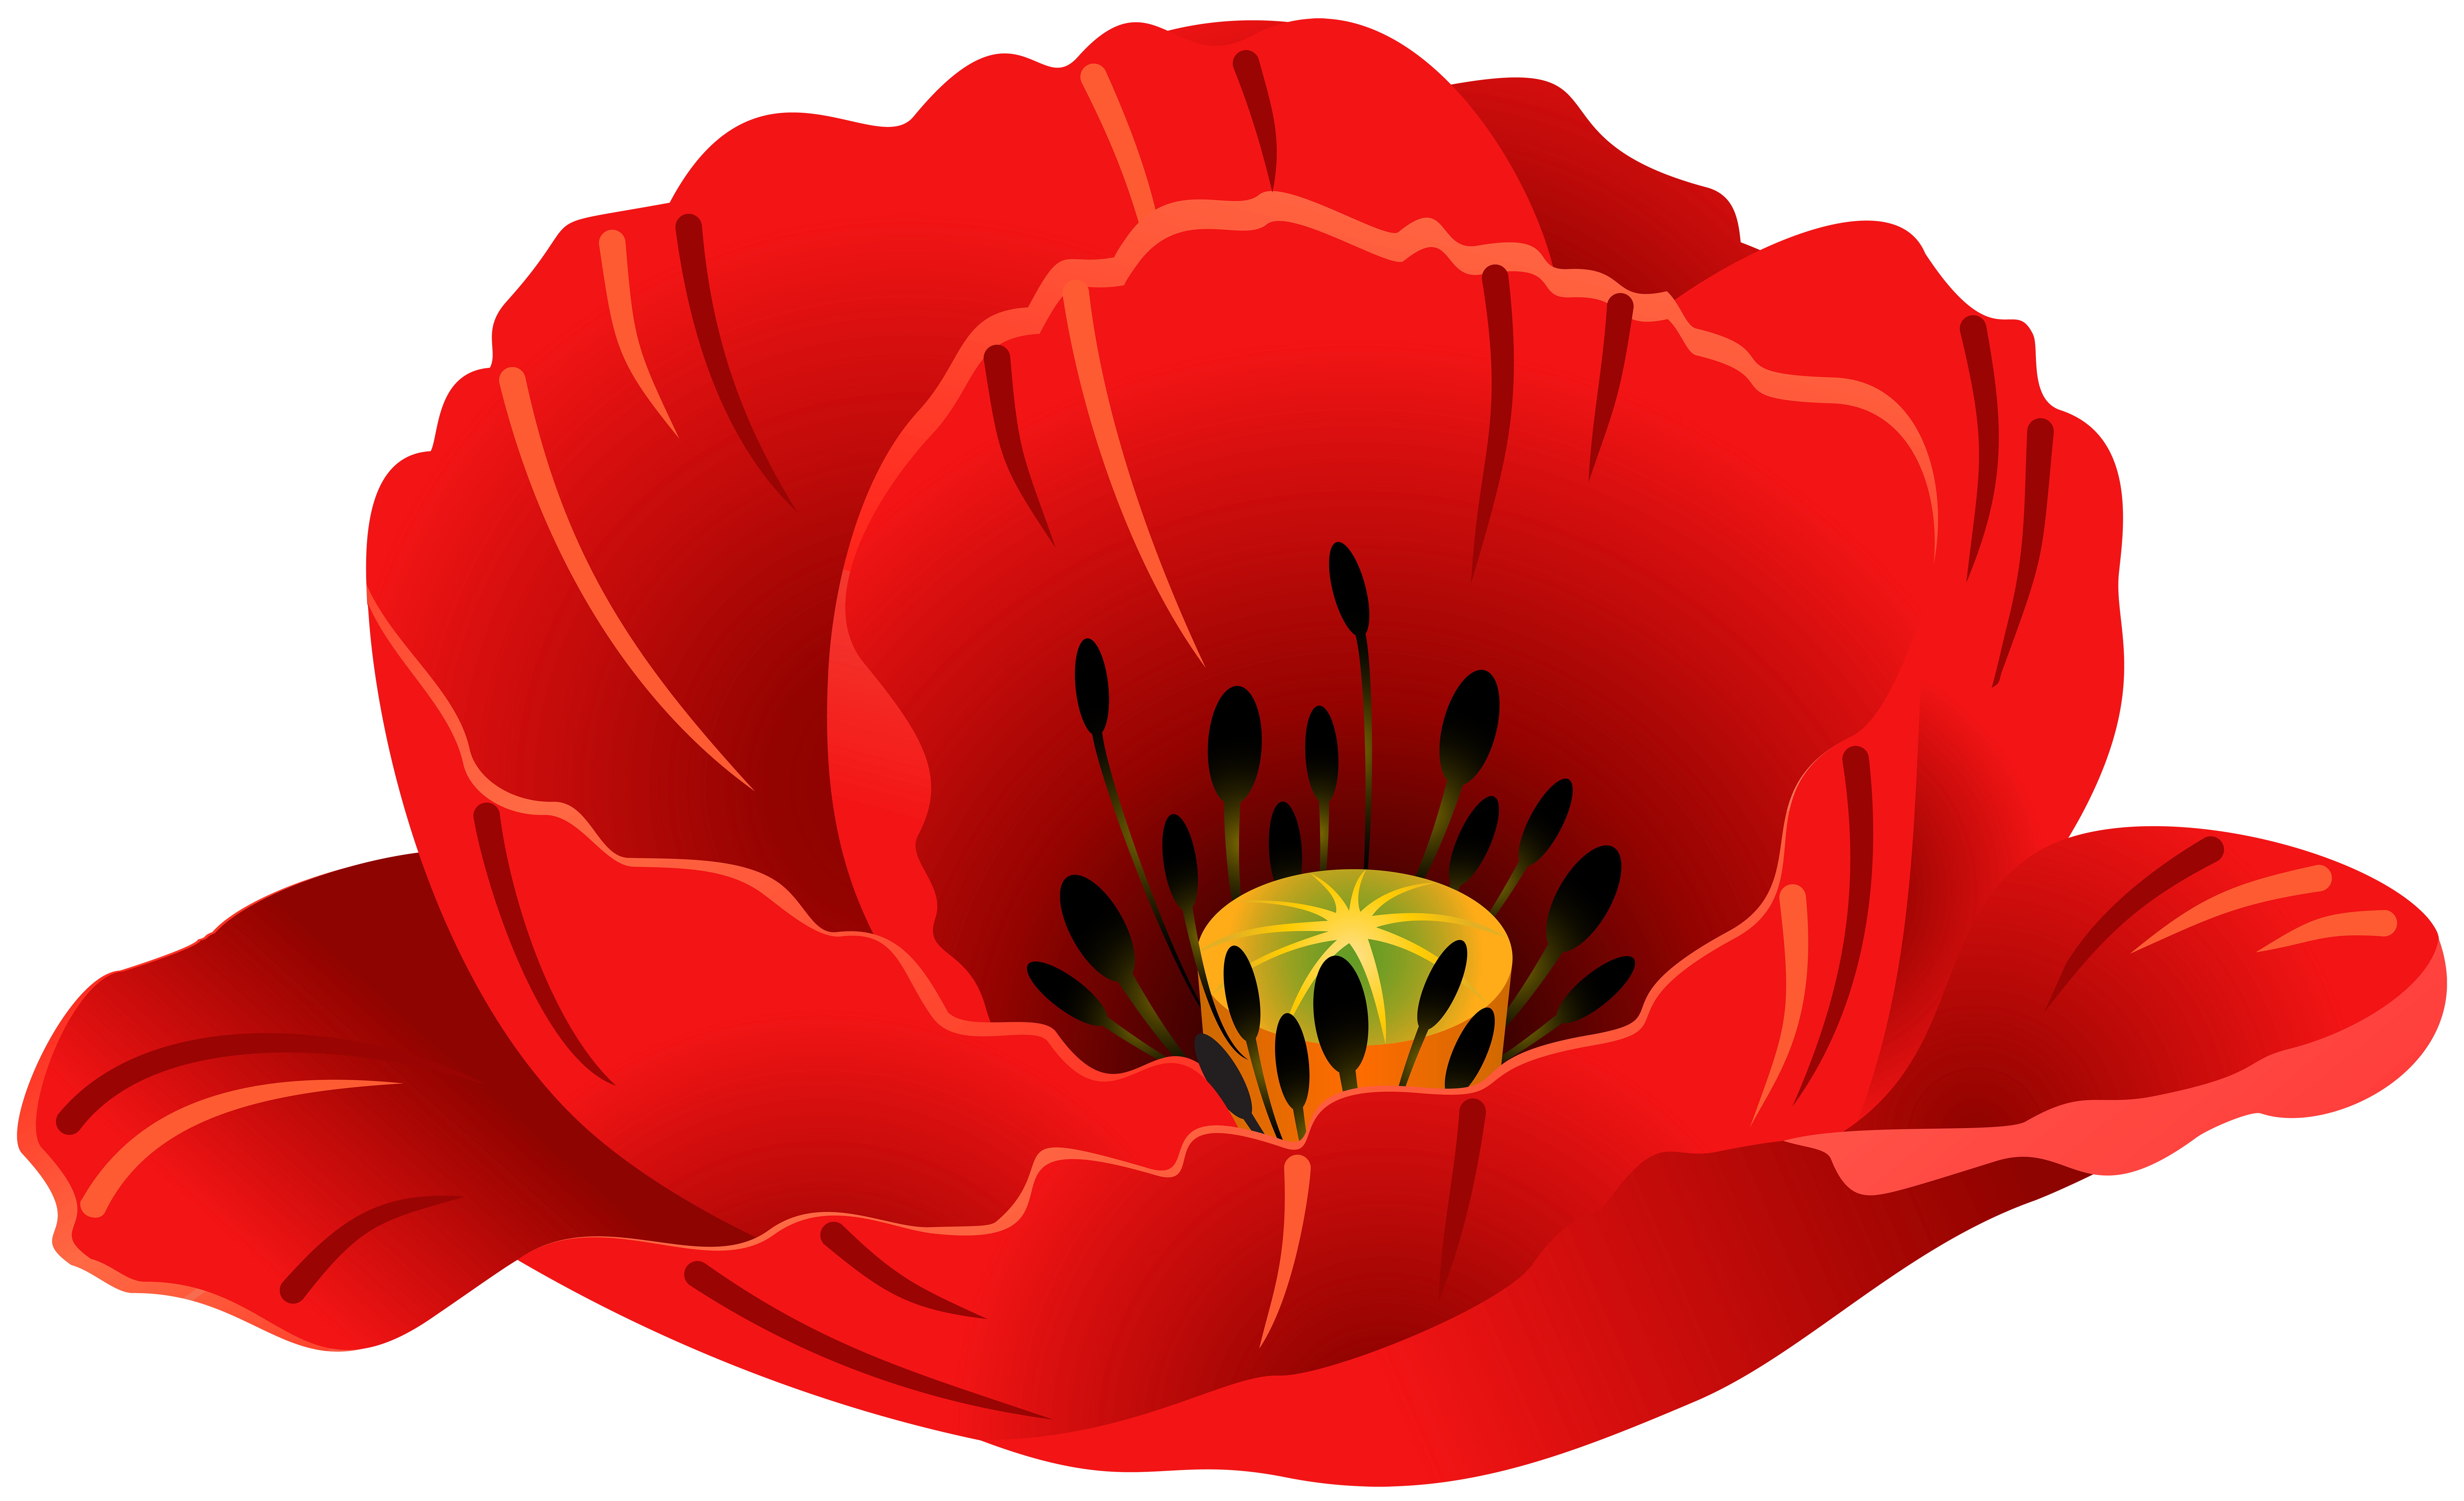 Free clipart of poppies